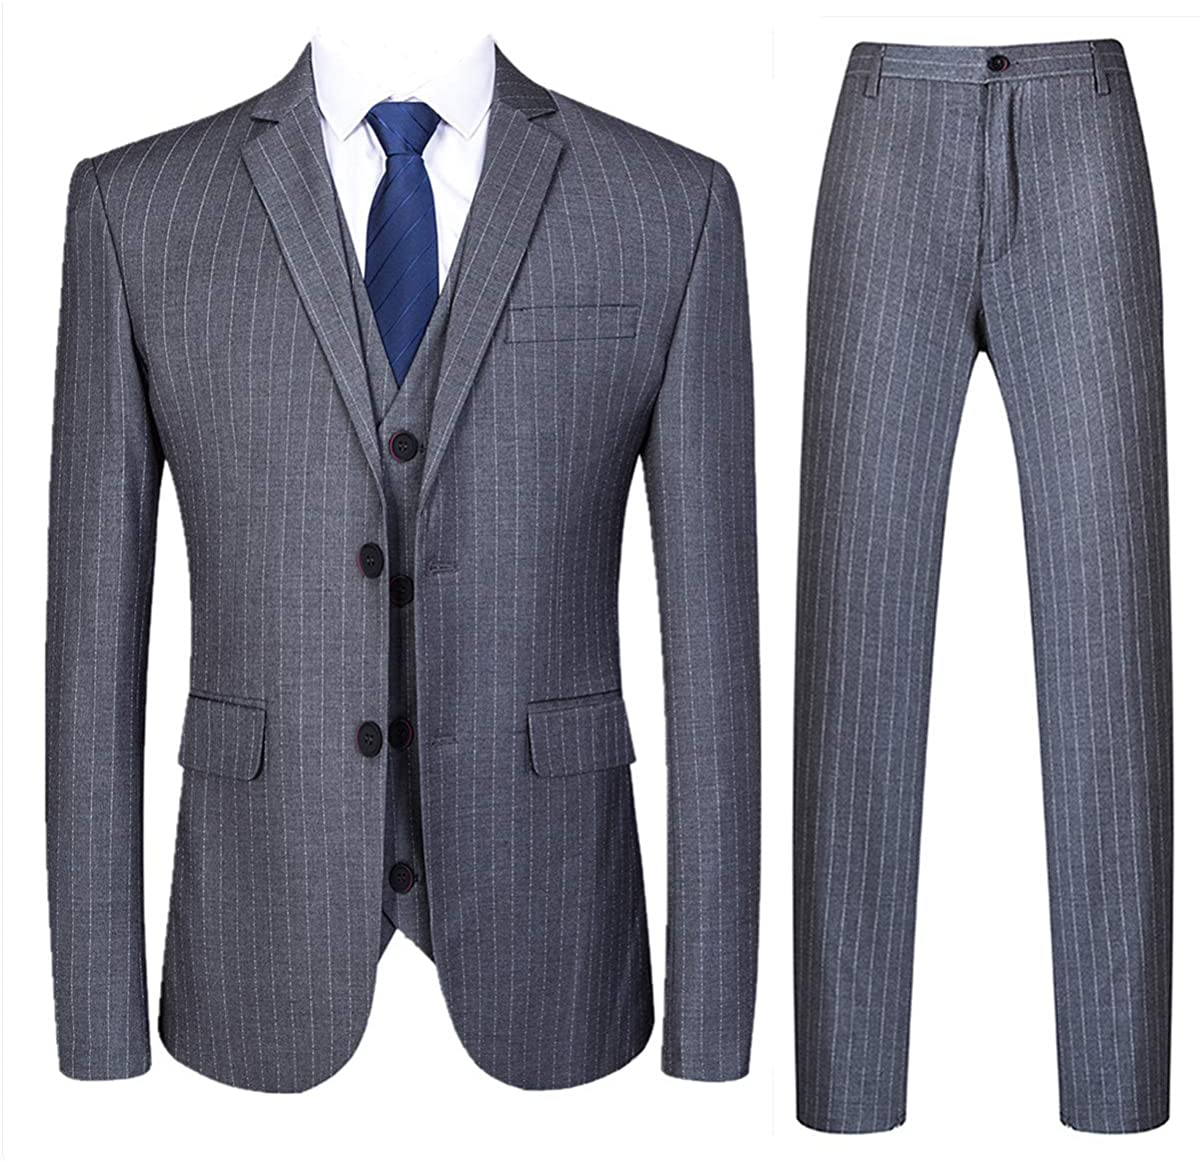 Mens 3 Piece Pinstripe Suit Slim Fit Casual Dress Suits Blazer + Vest + Pants